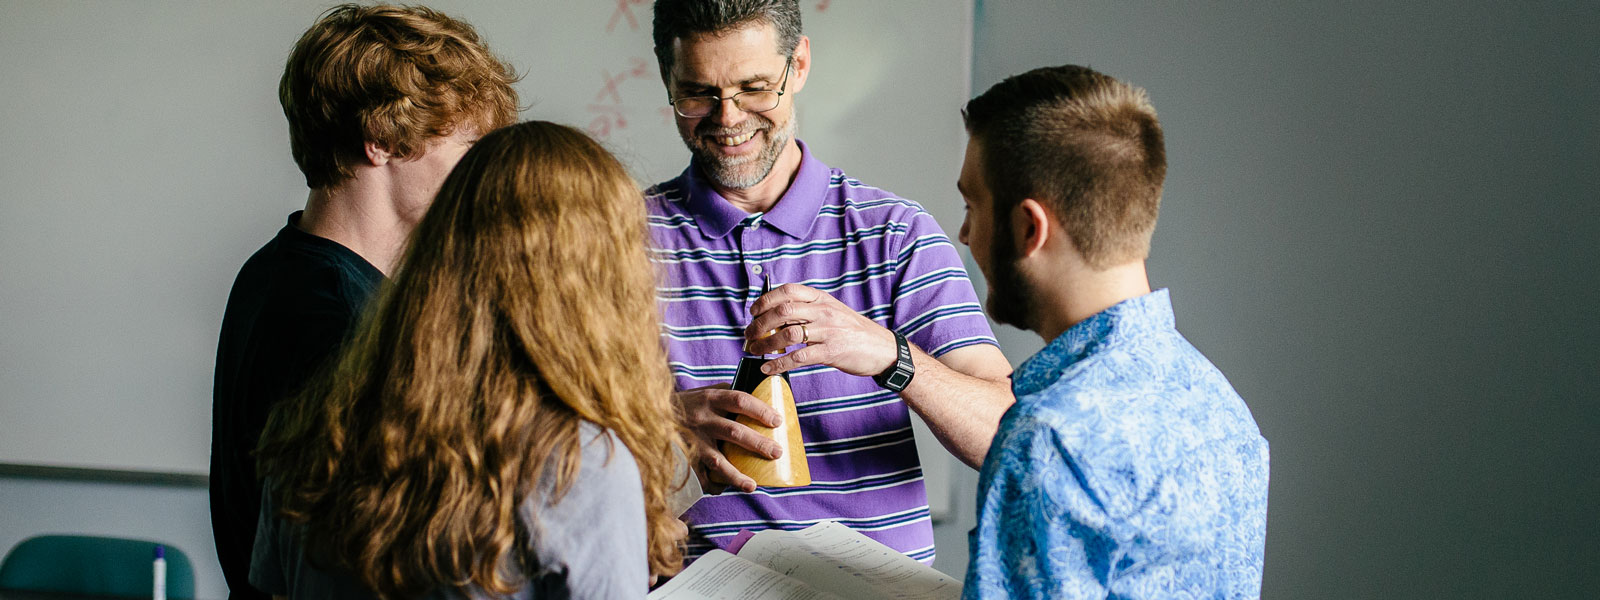 math professor explains diagram on projector